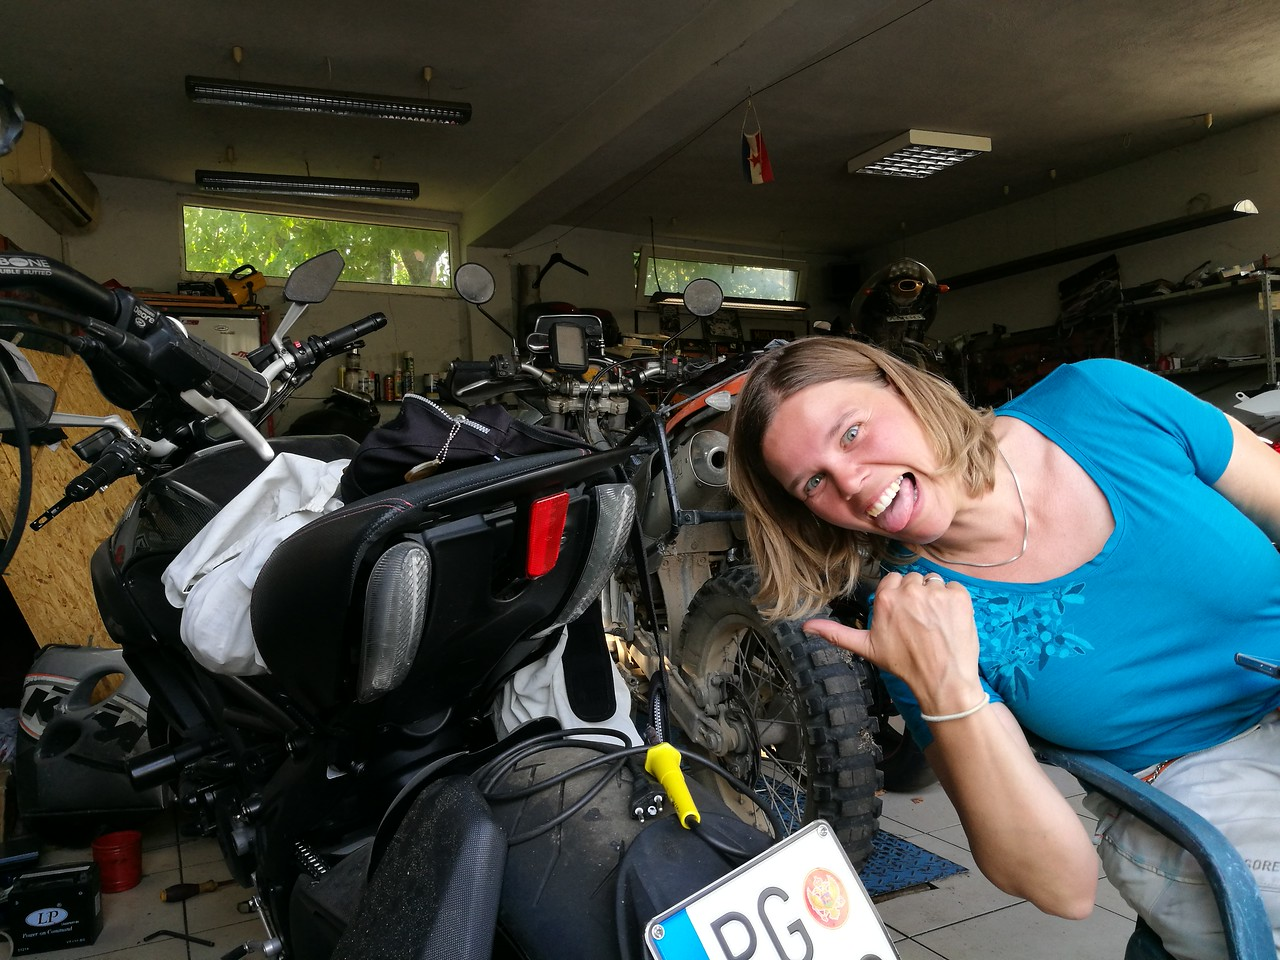 Sofie going crazy with some of the bikes in Vladan's garage